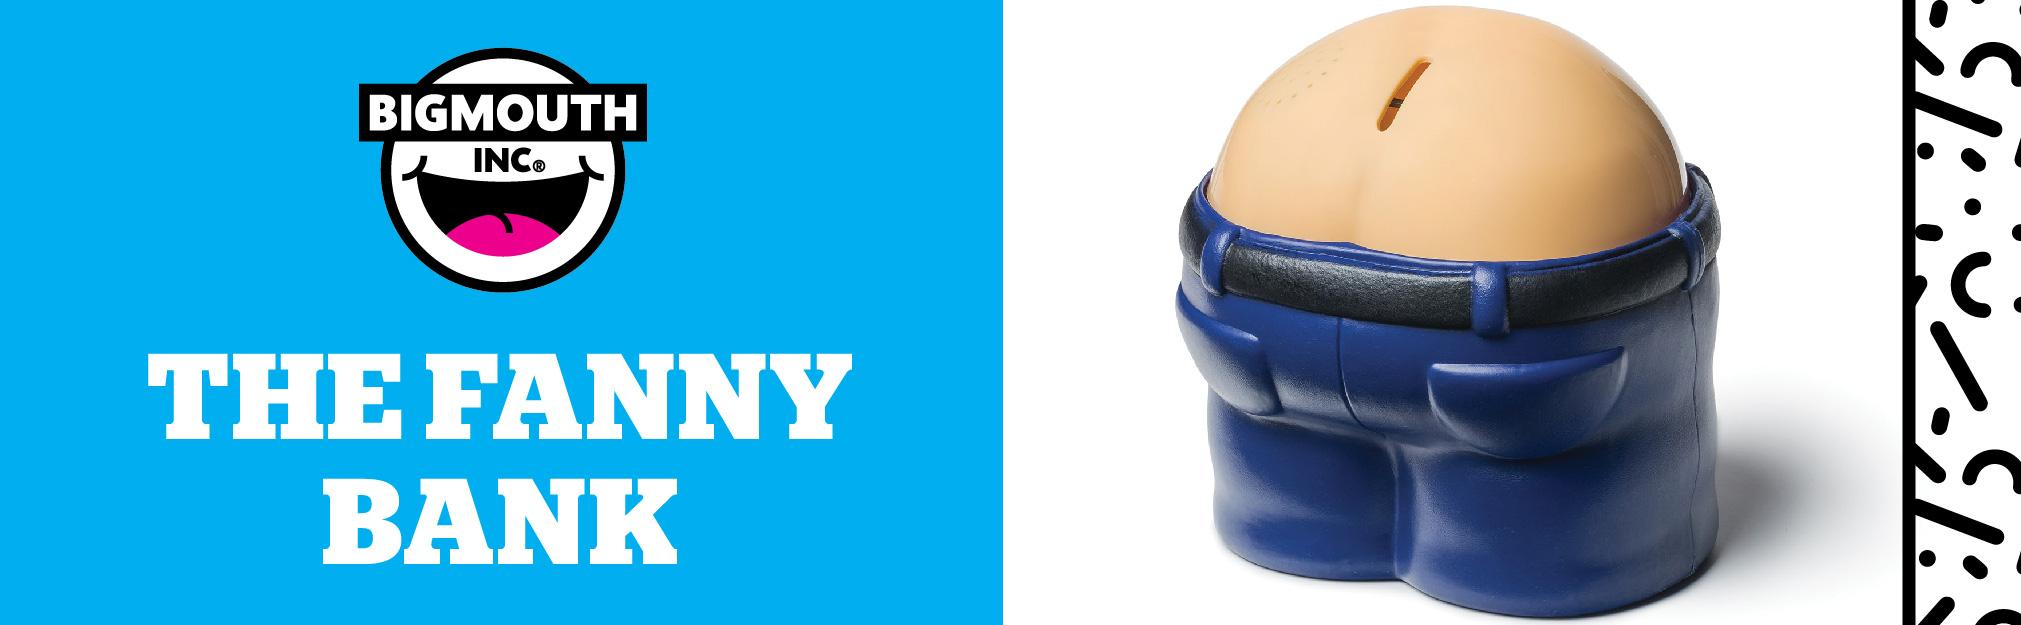 Bigmouth inc fanny bank funny farting bank makes noise funny gag gift home kitchen - Farting piggy bank ...